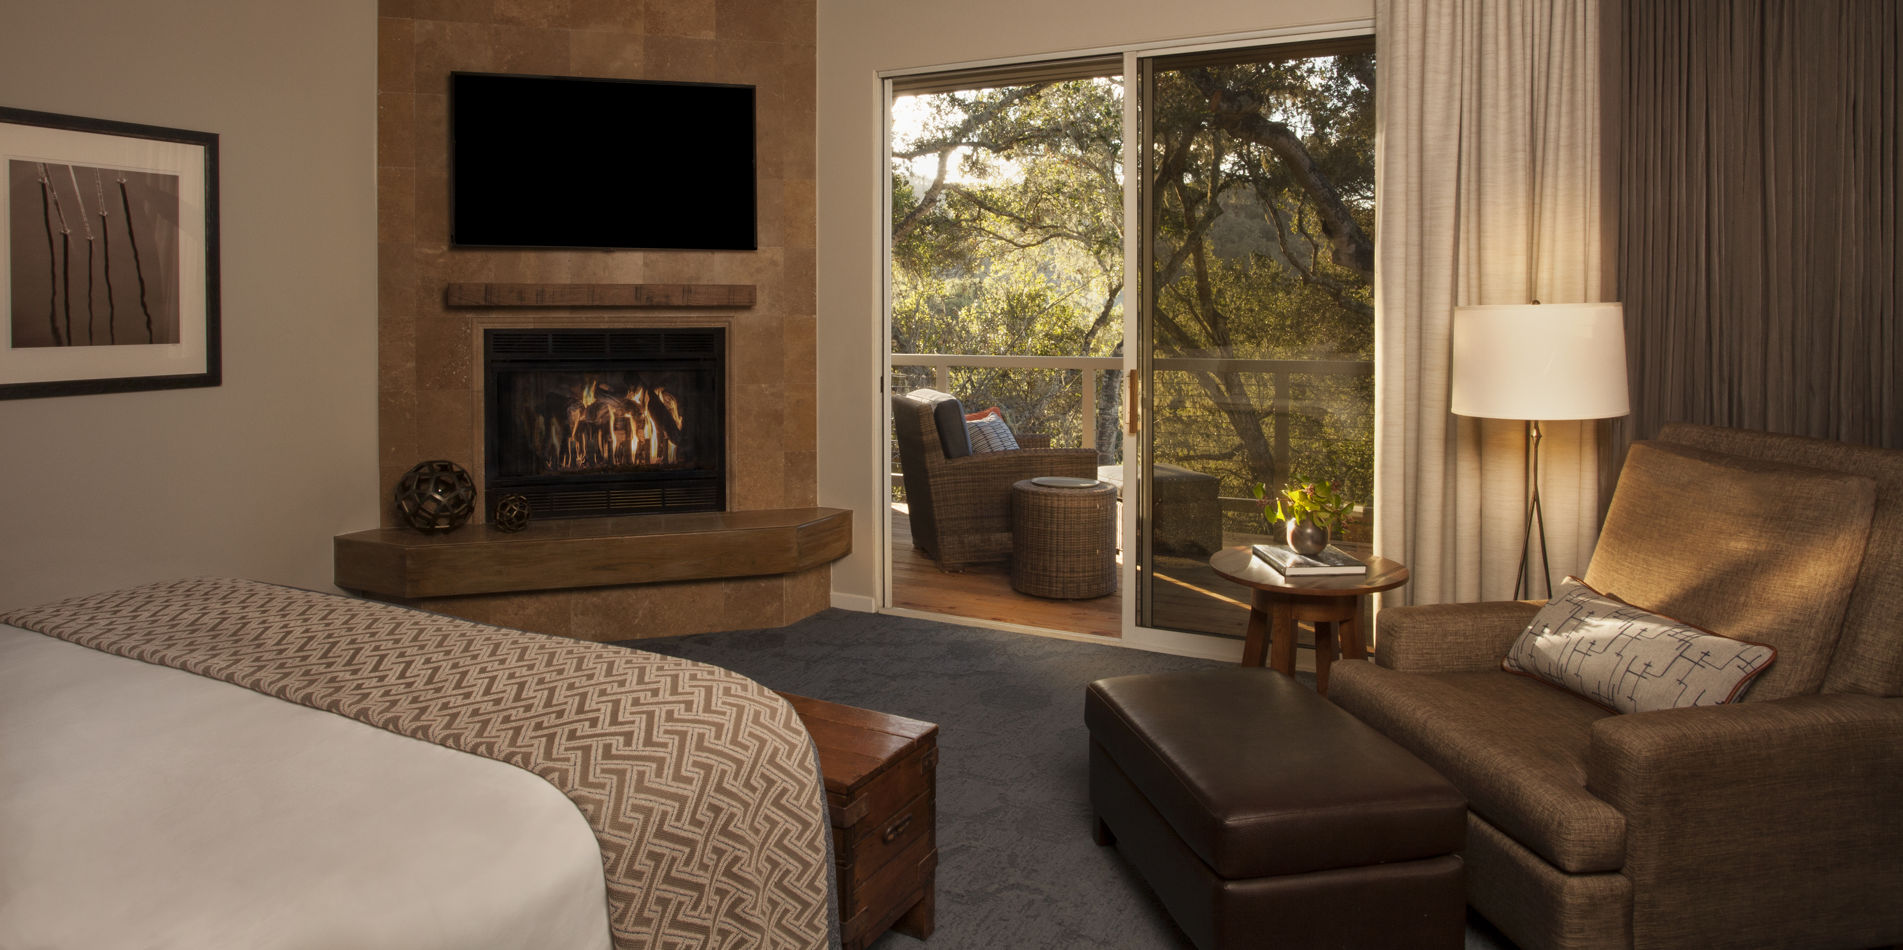 Carmel Valley Ranch_Accommodations_Suite_Ranch_Bedroom_Bed_6380_BM